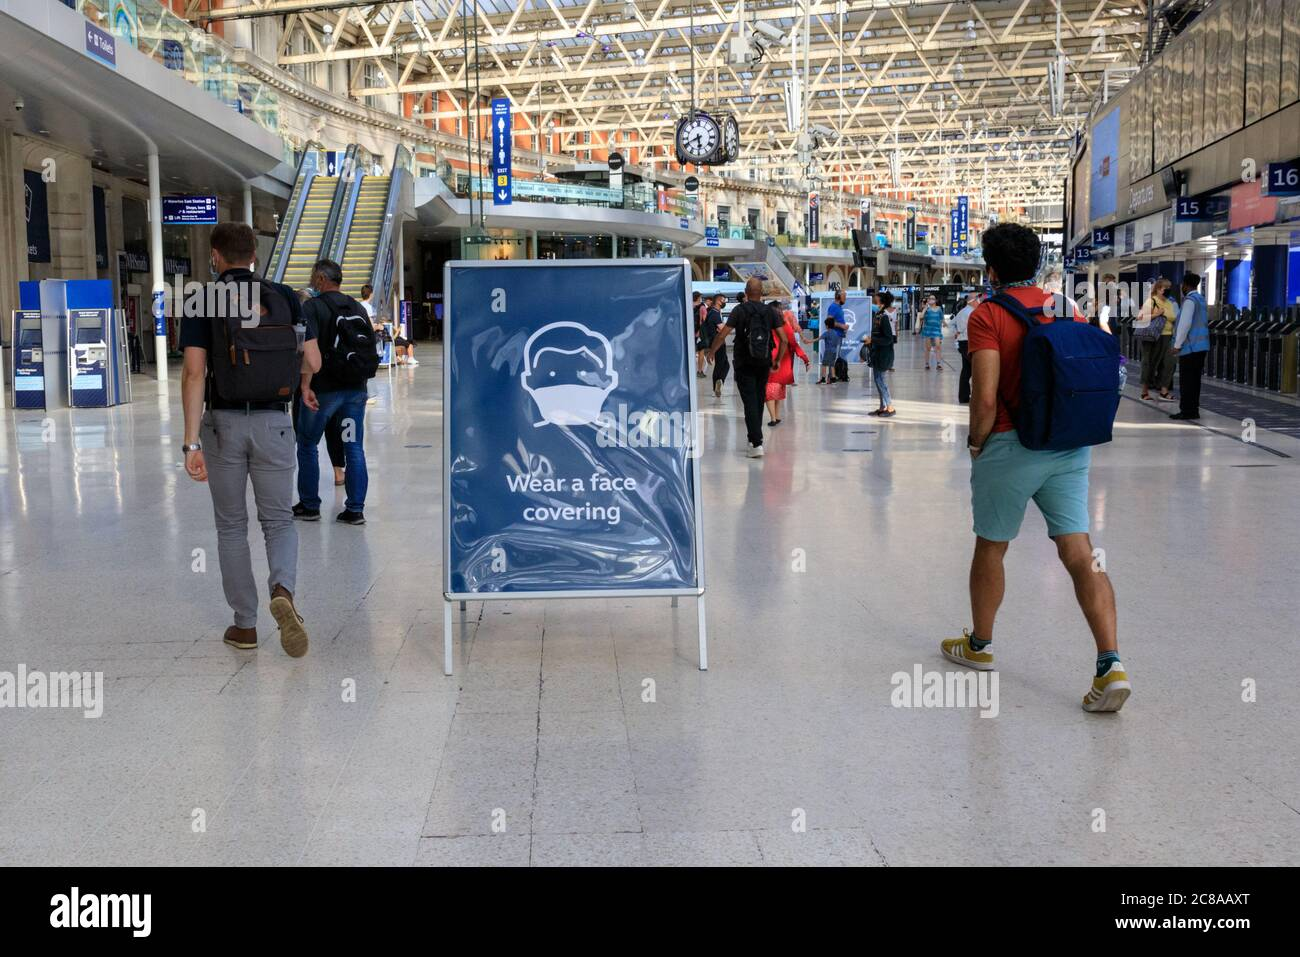 "London, UK. 22nd July, 2020. A ""Wear a Face Covering"" sign reminds commuters inside Waterloo Station to wear their masks. Mask wearing and social distancing appear to become 'the new normal' as more and more people get used to the new guidelines and recommendations in place. Credit: Imageplotter/Alamy Live News Stock Photo"